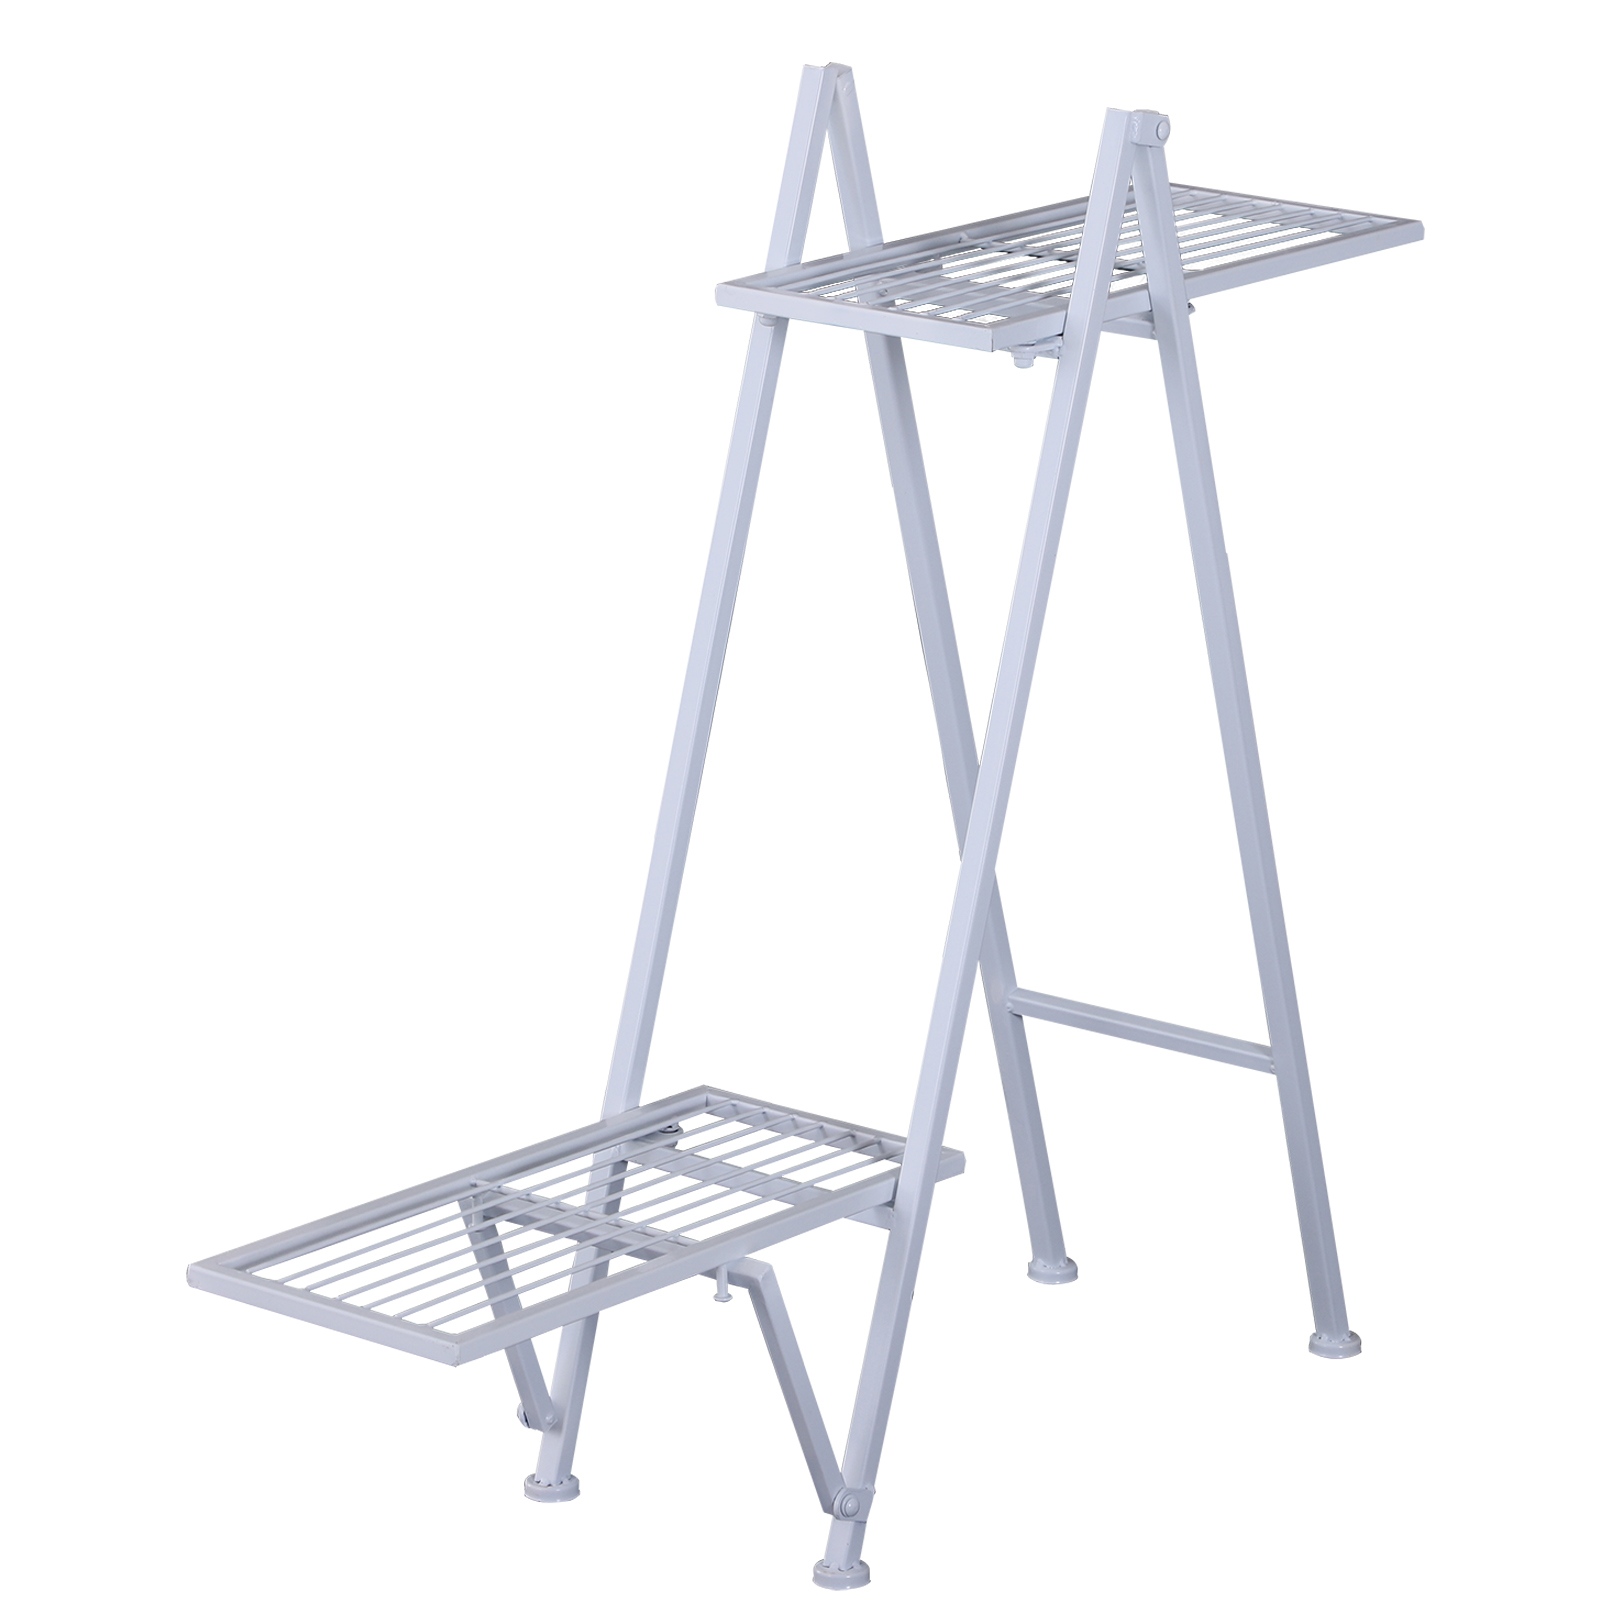 Outsunny Planter Stand Holder 2 Shelves for Home and Garden Plants Metal 86x24x81 cm White|  -